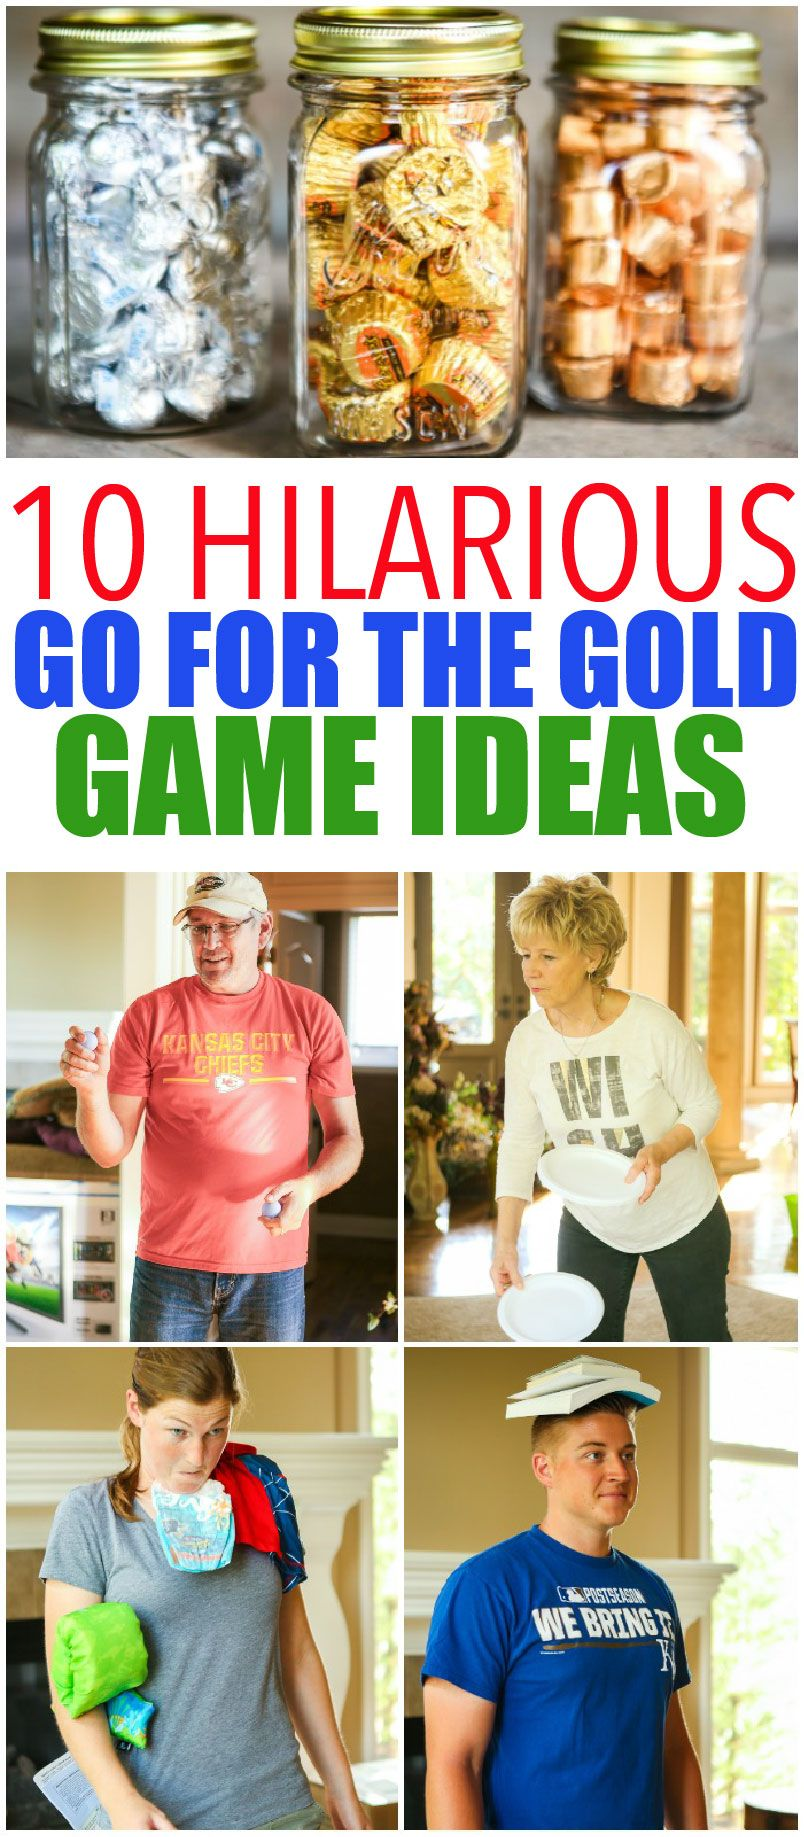 10 Hilarious Olympics Party Games That Are Perfect For Getting Ready The